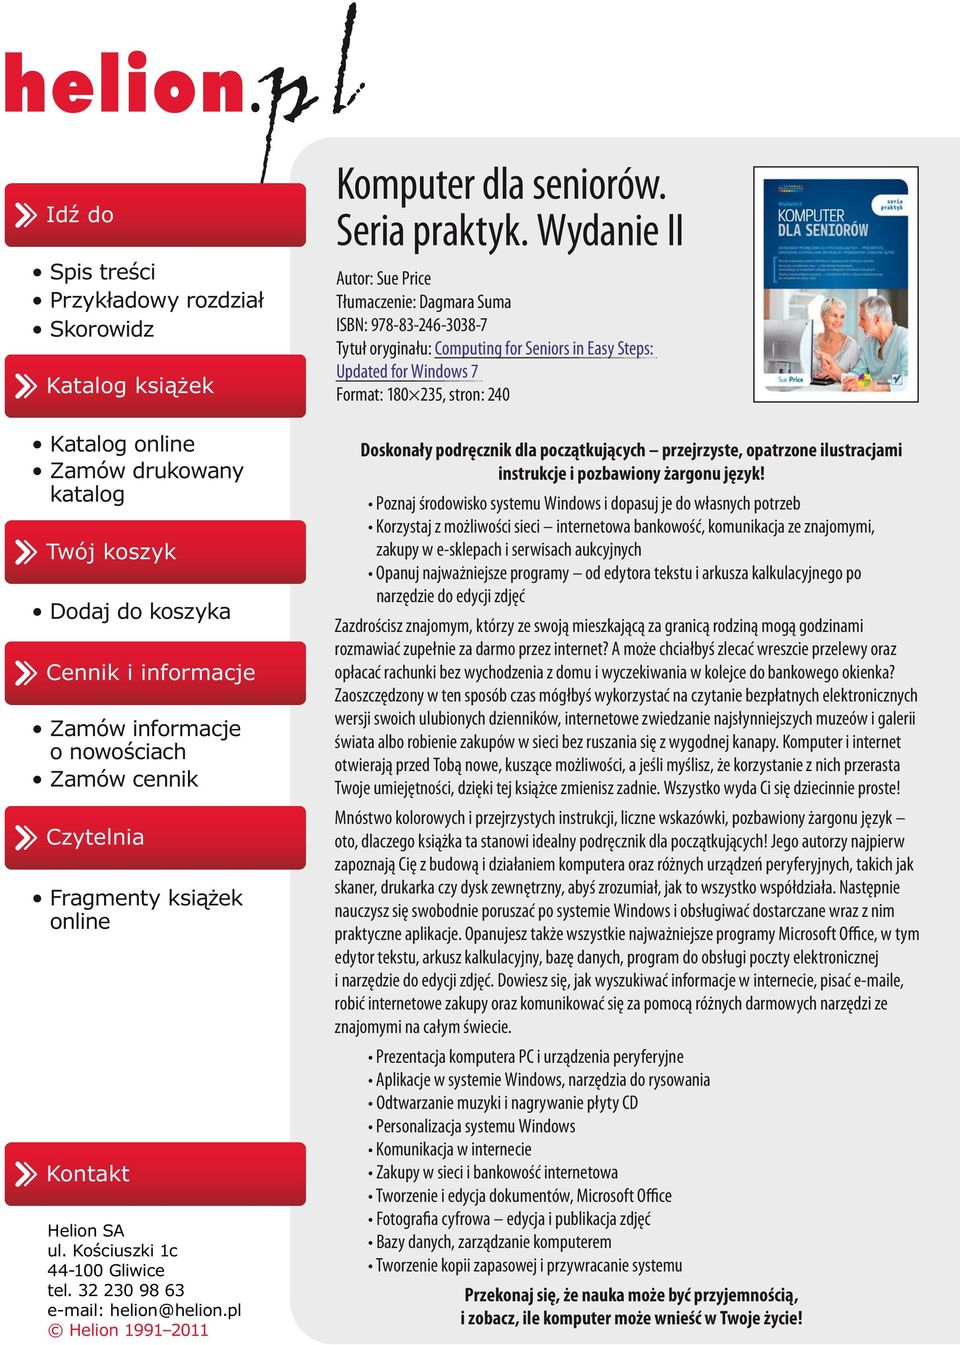 Wydanie II Autor: Sue Price Tłumaczenie: Dagmara Suma ISBN: 978-83-246-3038-7 Tytuł oryginału: Computing for Seniors in Easy Steps: Updated for Windows 7 Format: 180 235, stron: 240 Doskonały